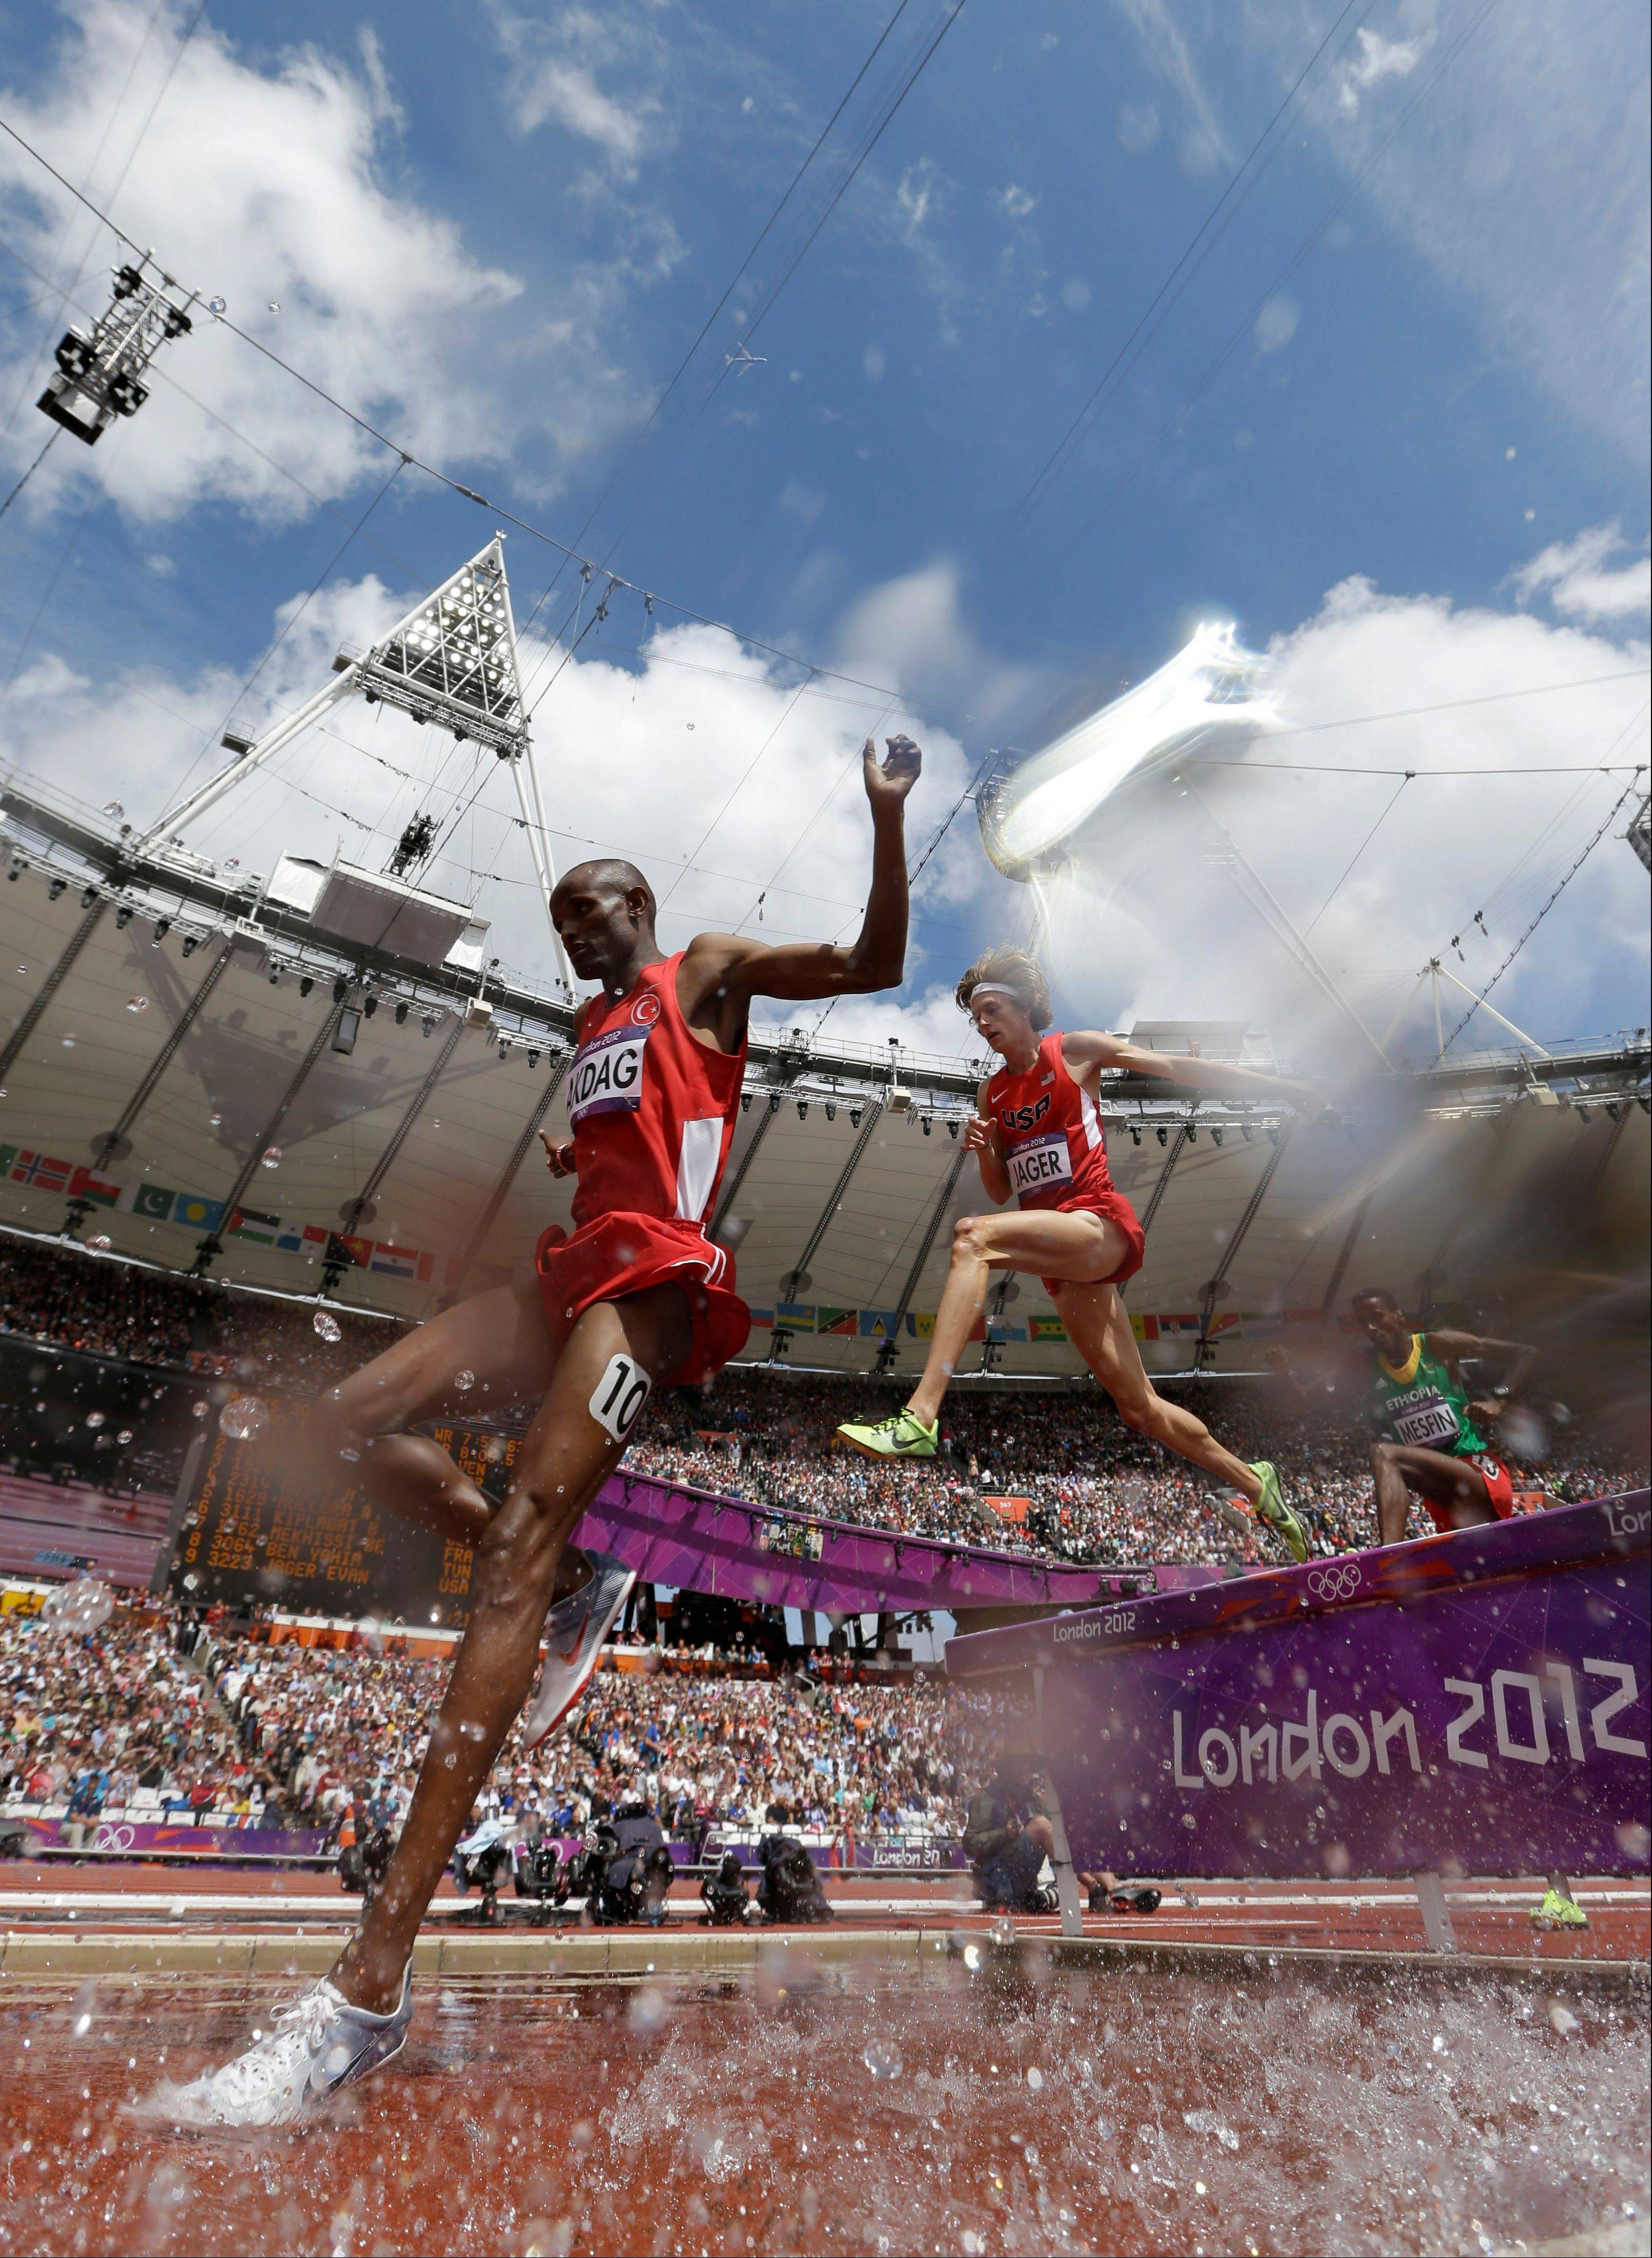 United States' Evan Jager, right, and Turkey's Tarik Langat Akdag compete in a men's 3000-meter steeplechase heat during the athletics in the Olympic Stadium at the 2012 Summer Olympics, London, Friday, Aug. 3, 2012.